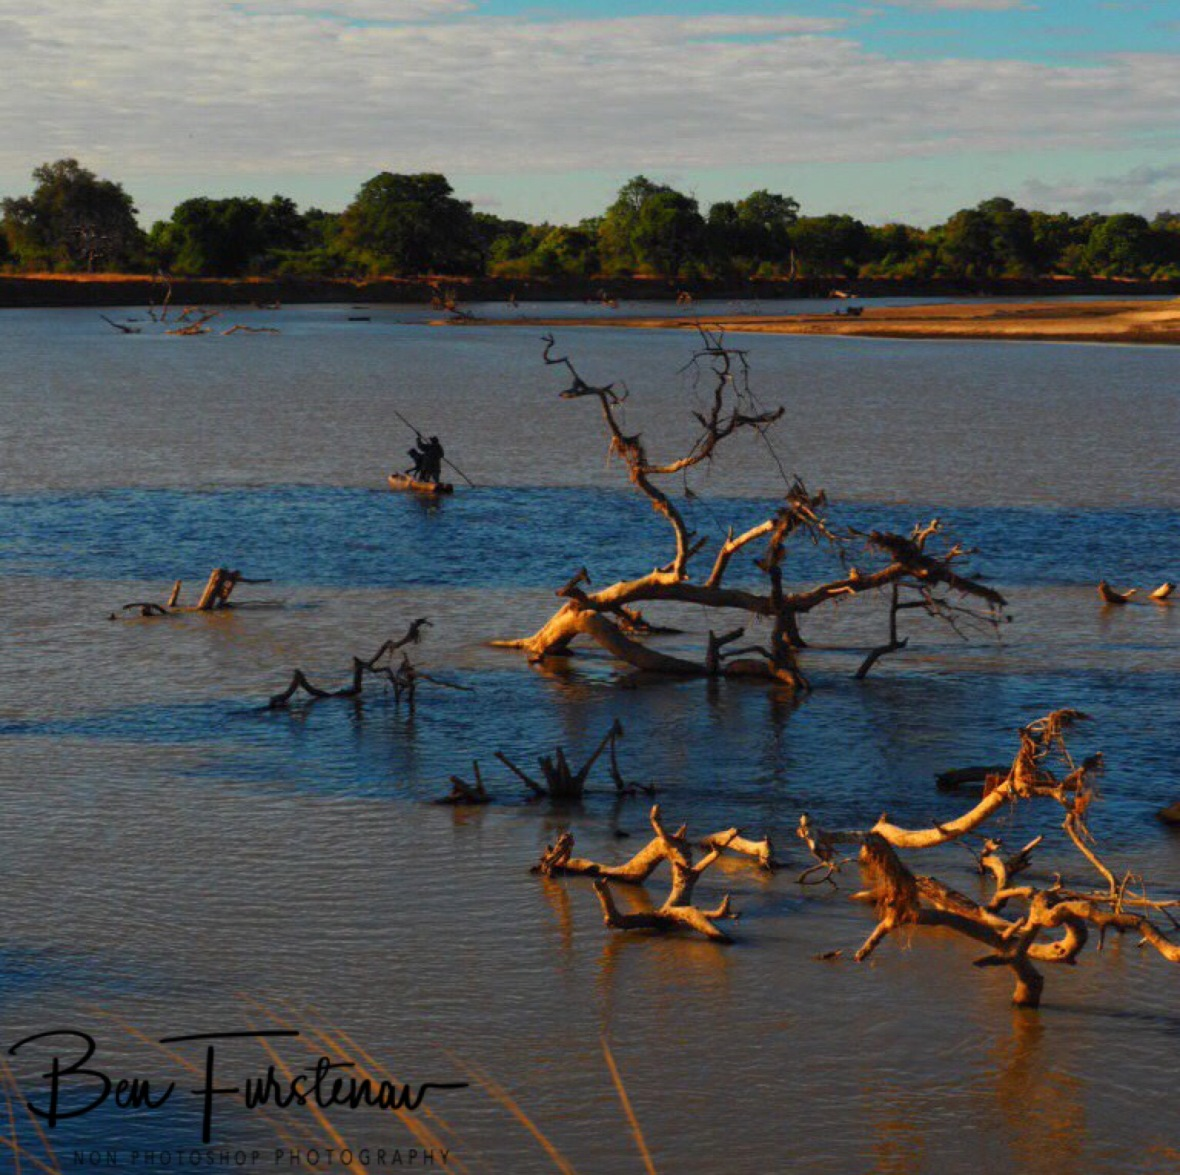 Fishermen dodging tree stumps and hippos, South Luangwa National Park, Zambia